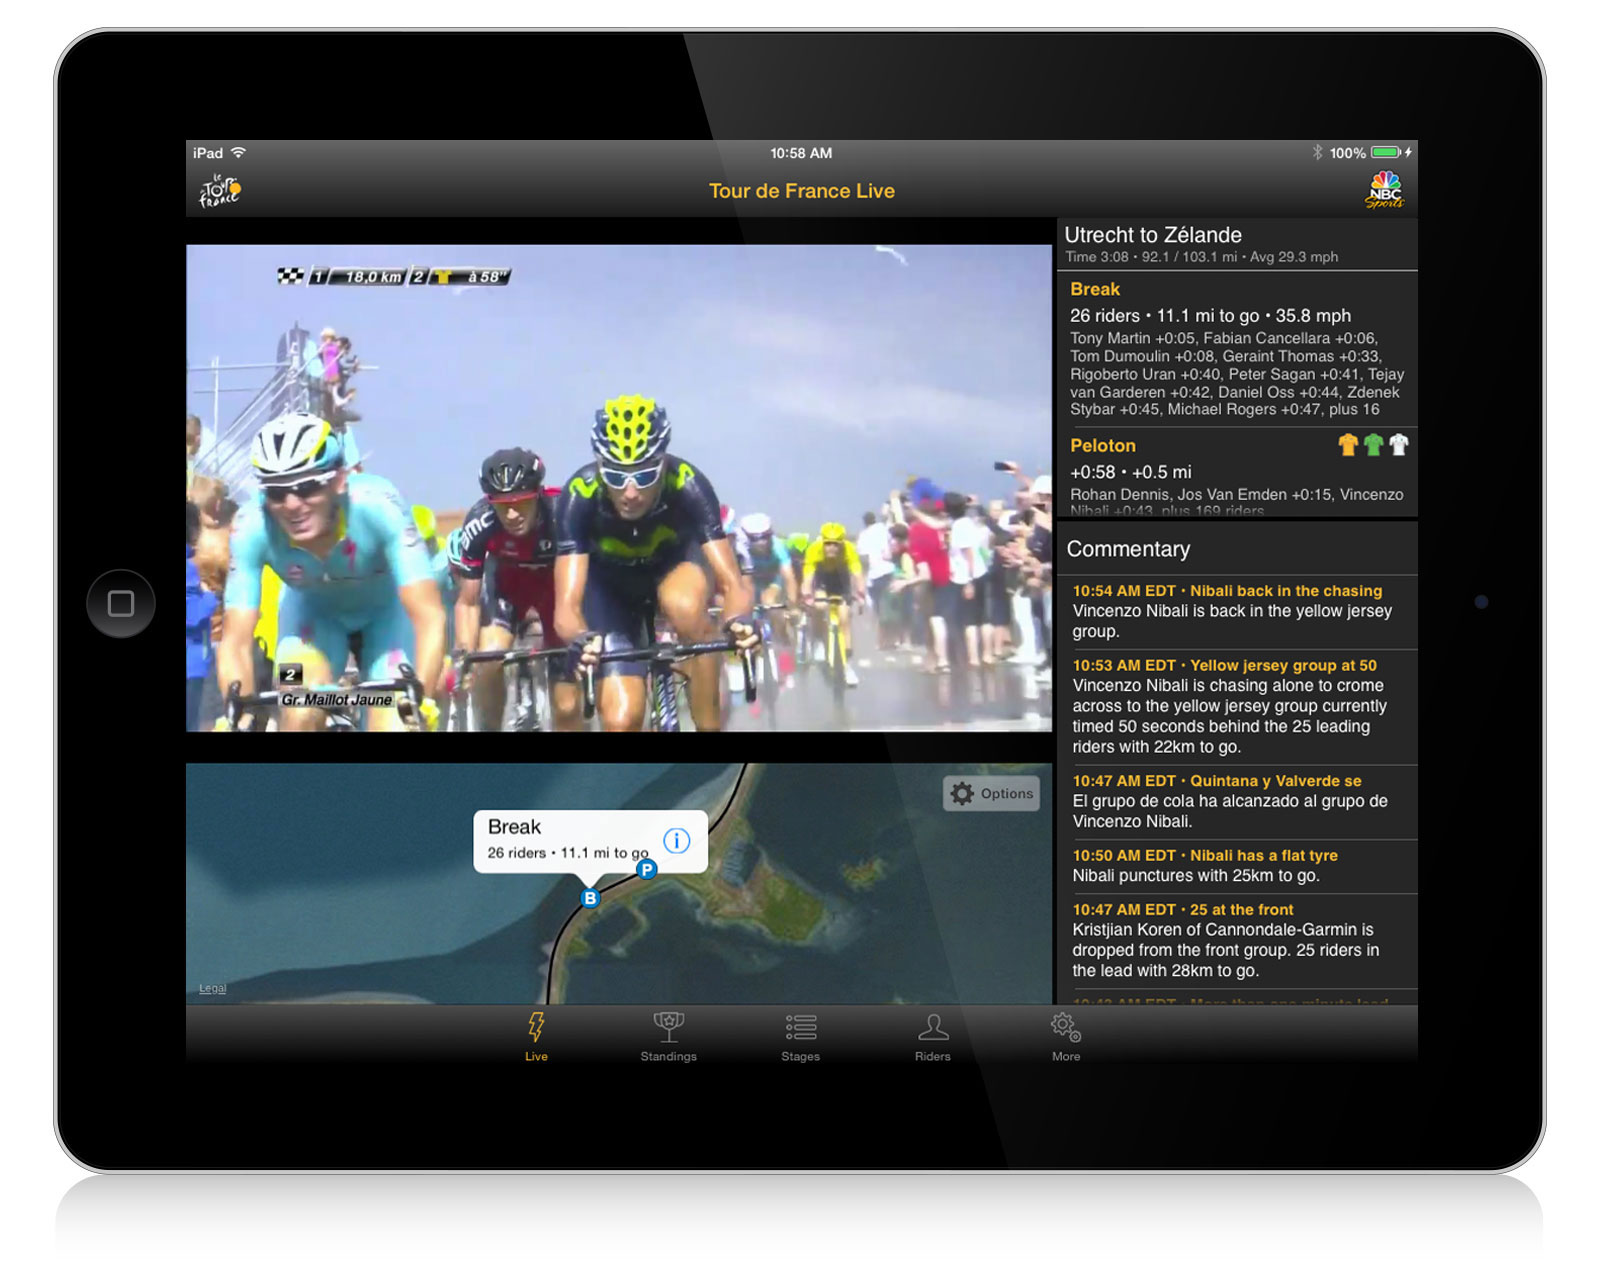 Le Tour de France website screen grabs